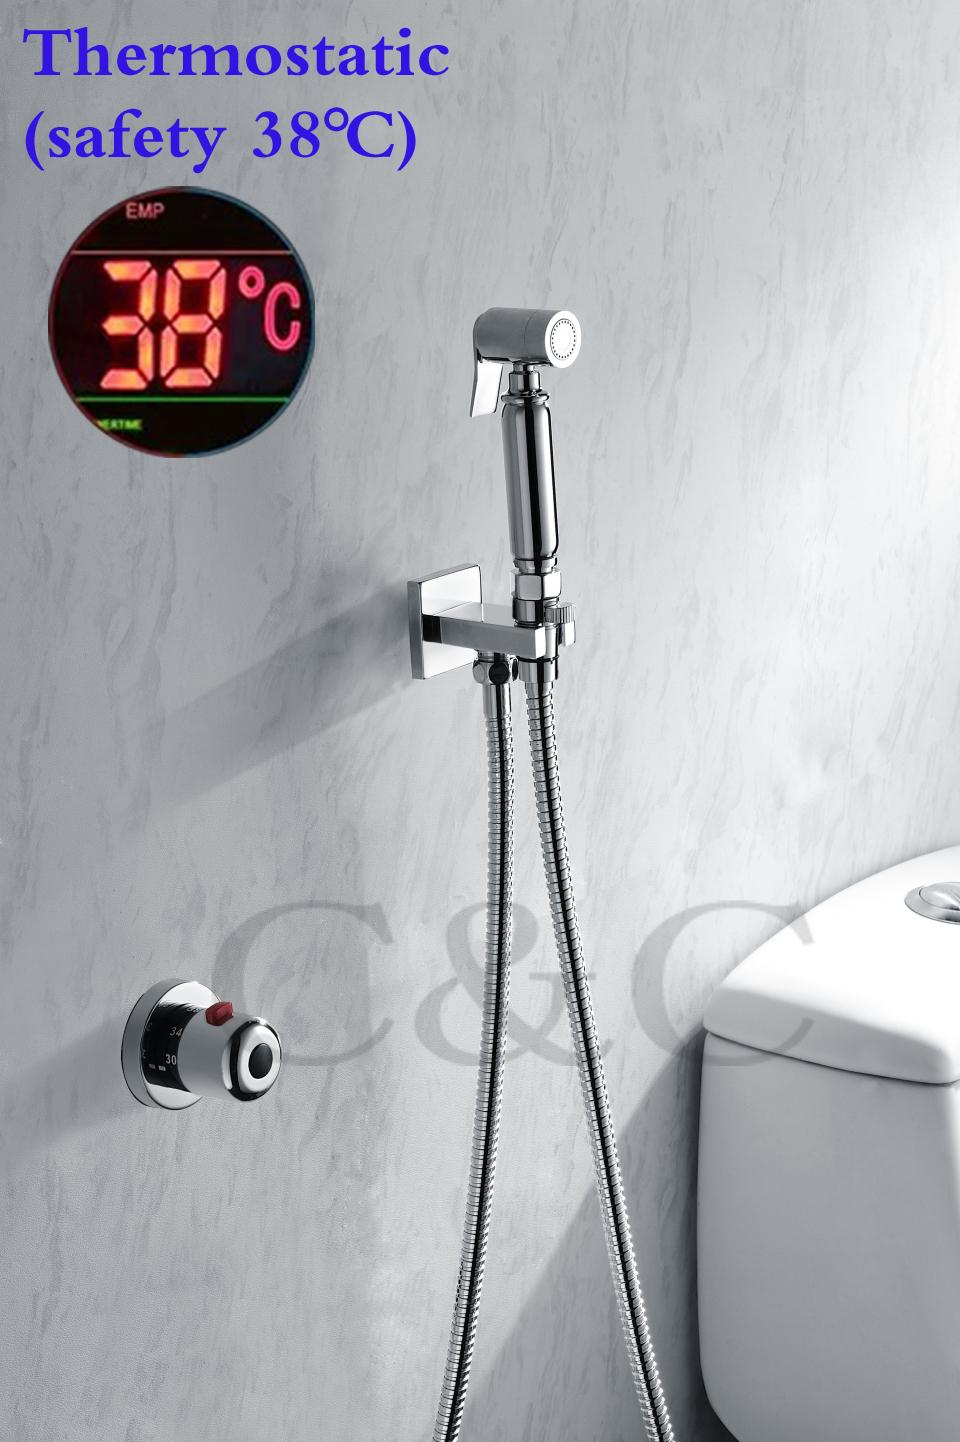 2018 Thermostatic Handheld Toilet Bidet Faucet Hygiene Personal ...